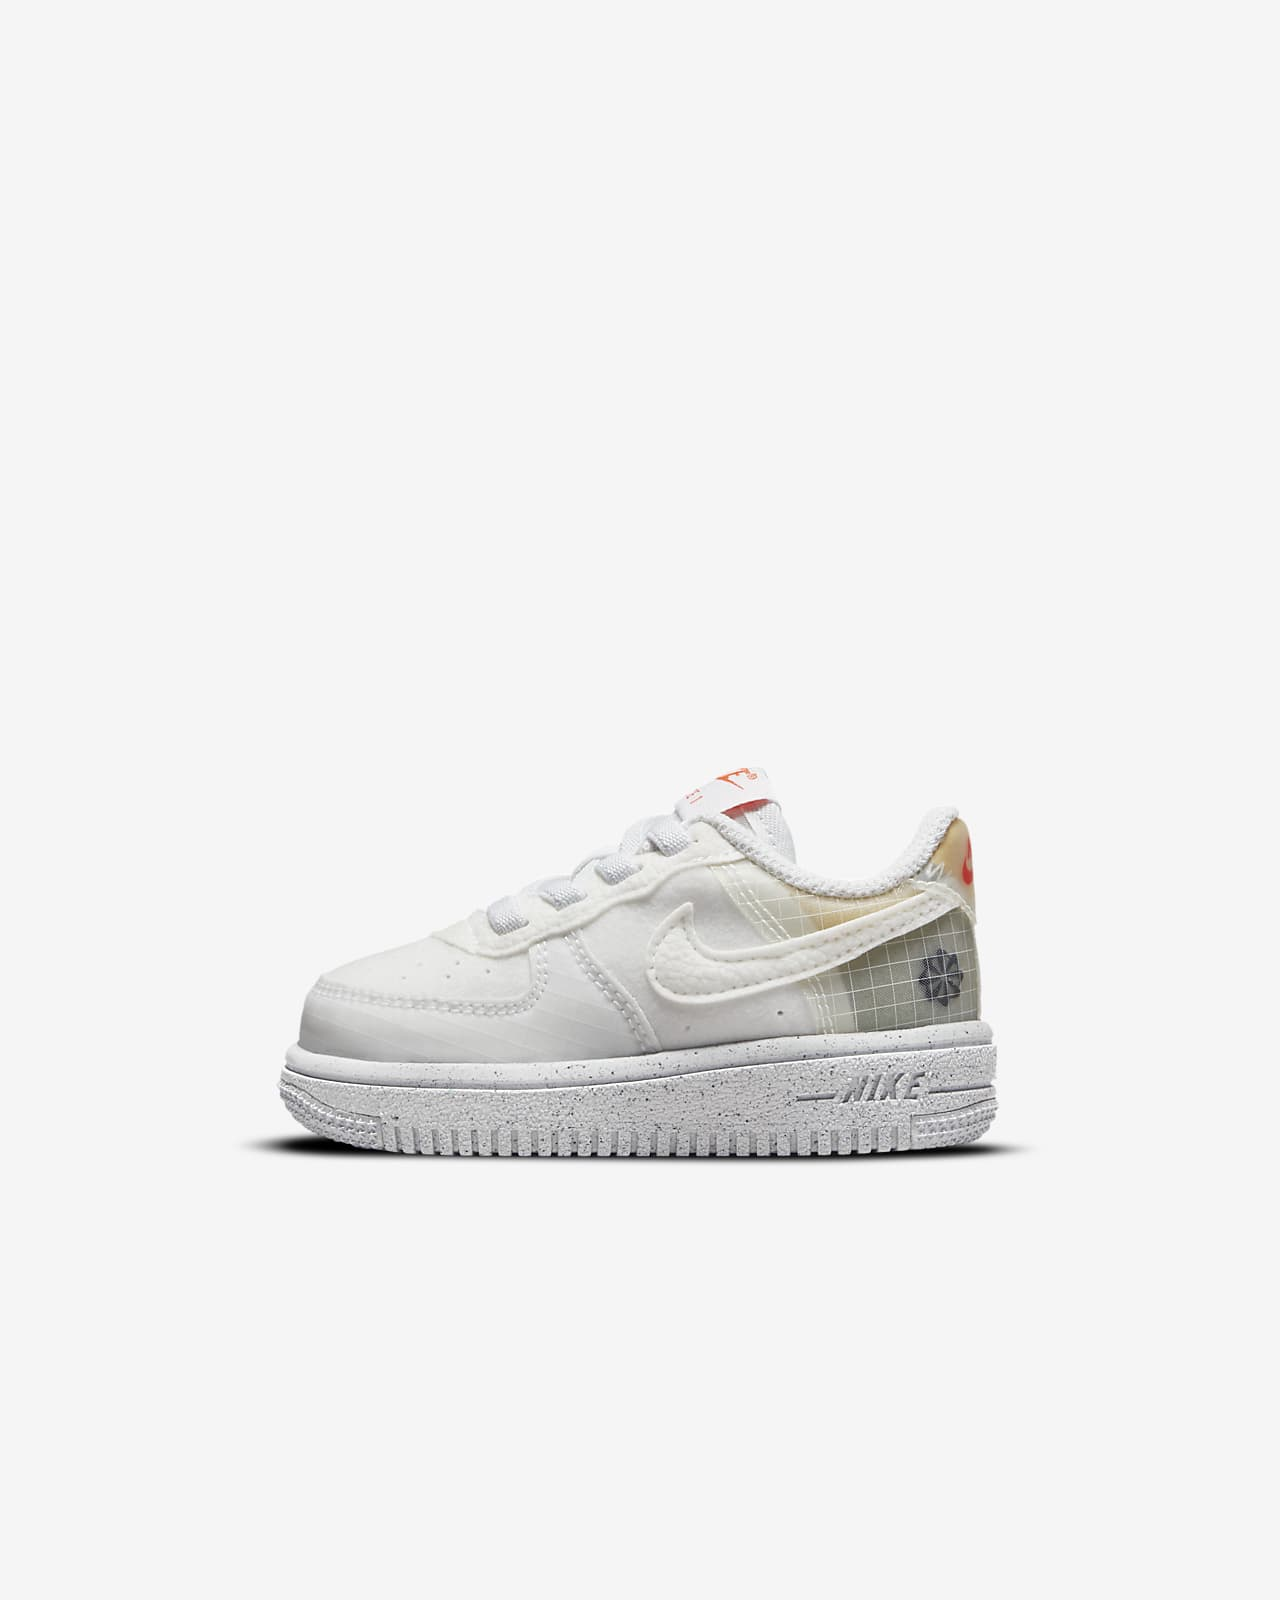 Nike Force 1 Crater 嬰幼兒鞋款